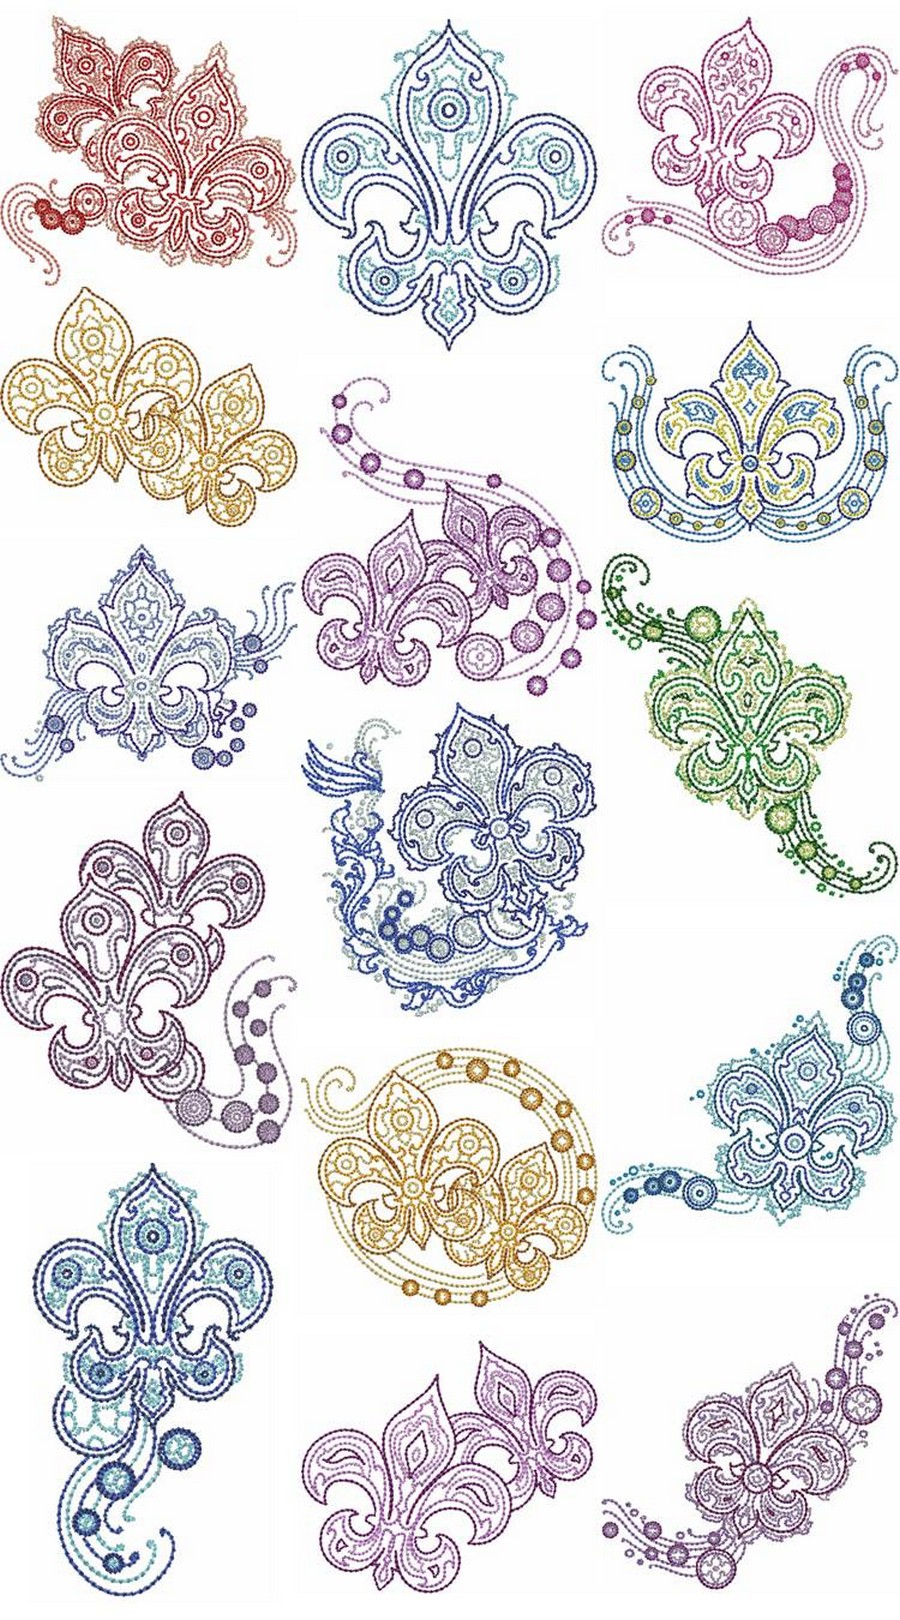 Fleur de lis fashion machine embroidery designs by sew swell Fashion embroidery designs